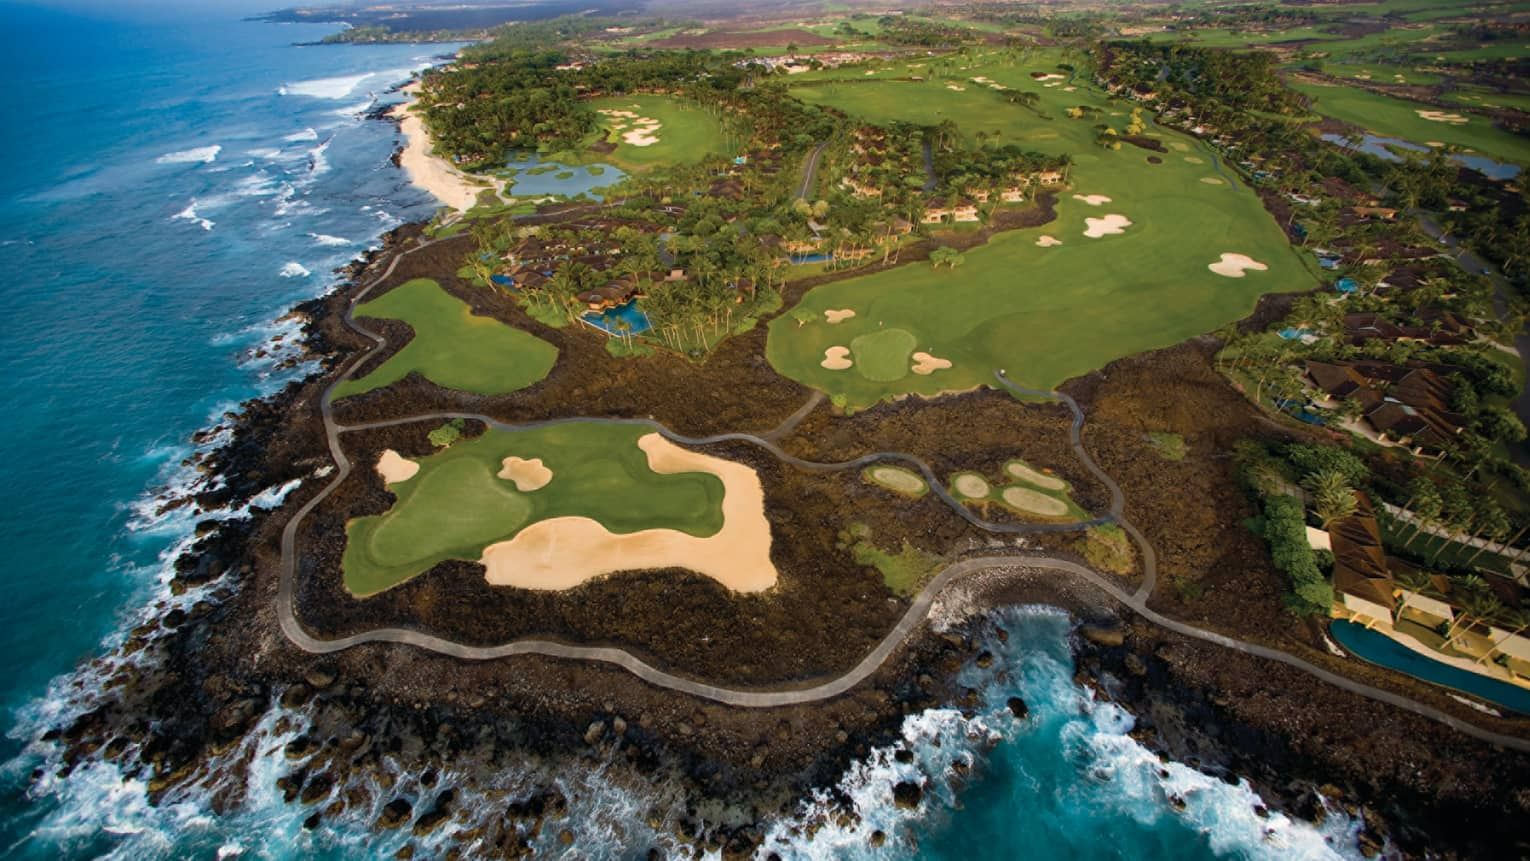 Aerial view of 18-hole golf course greens on volcanic rock by ocean